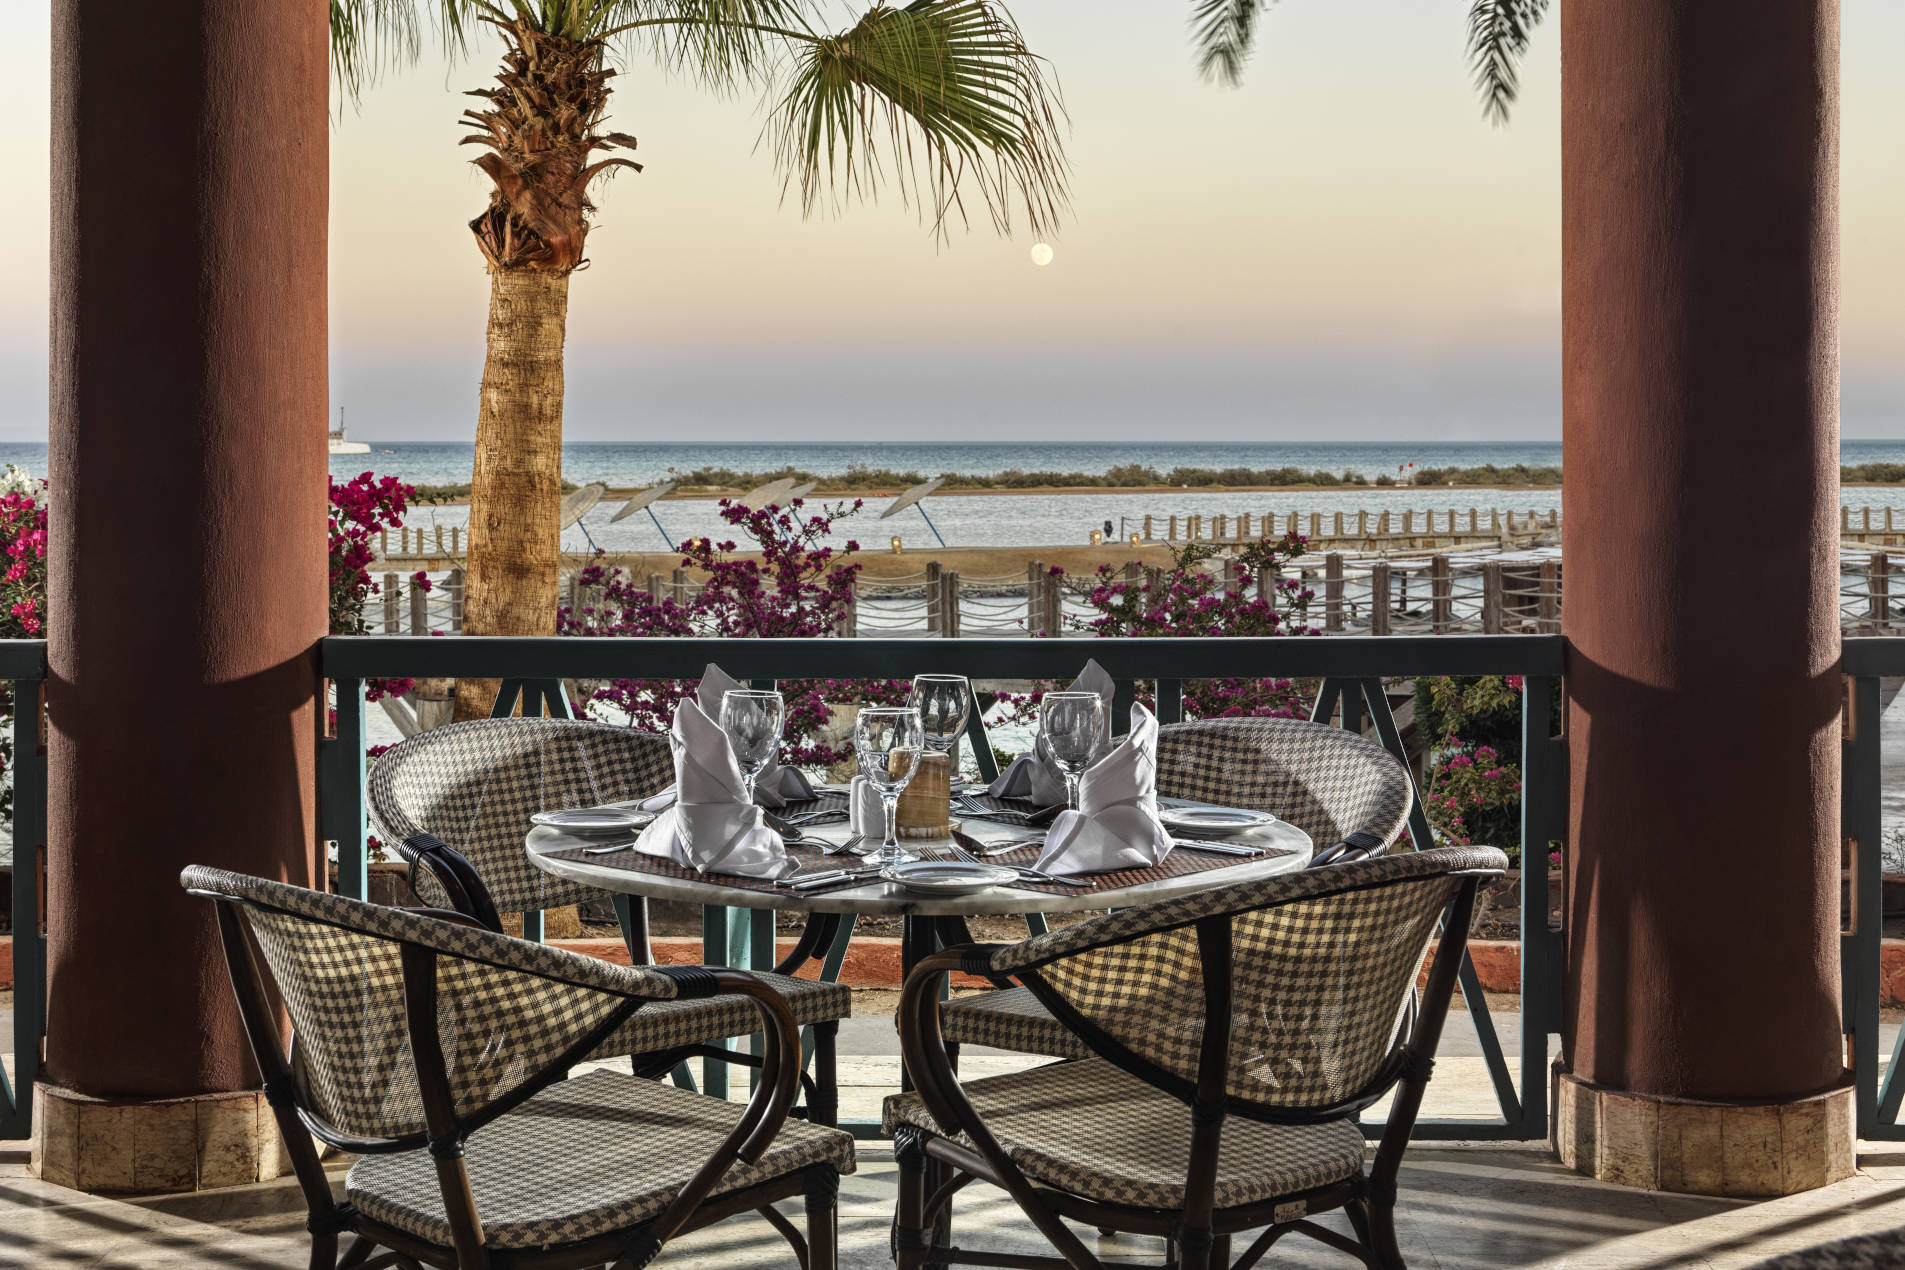 The outside dining area of the main restaurant of Sheraton Miramar hotel in El Gouna with breathtaking view of Red Sea waters